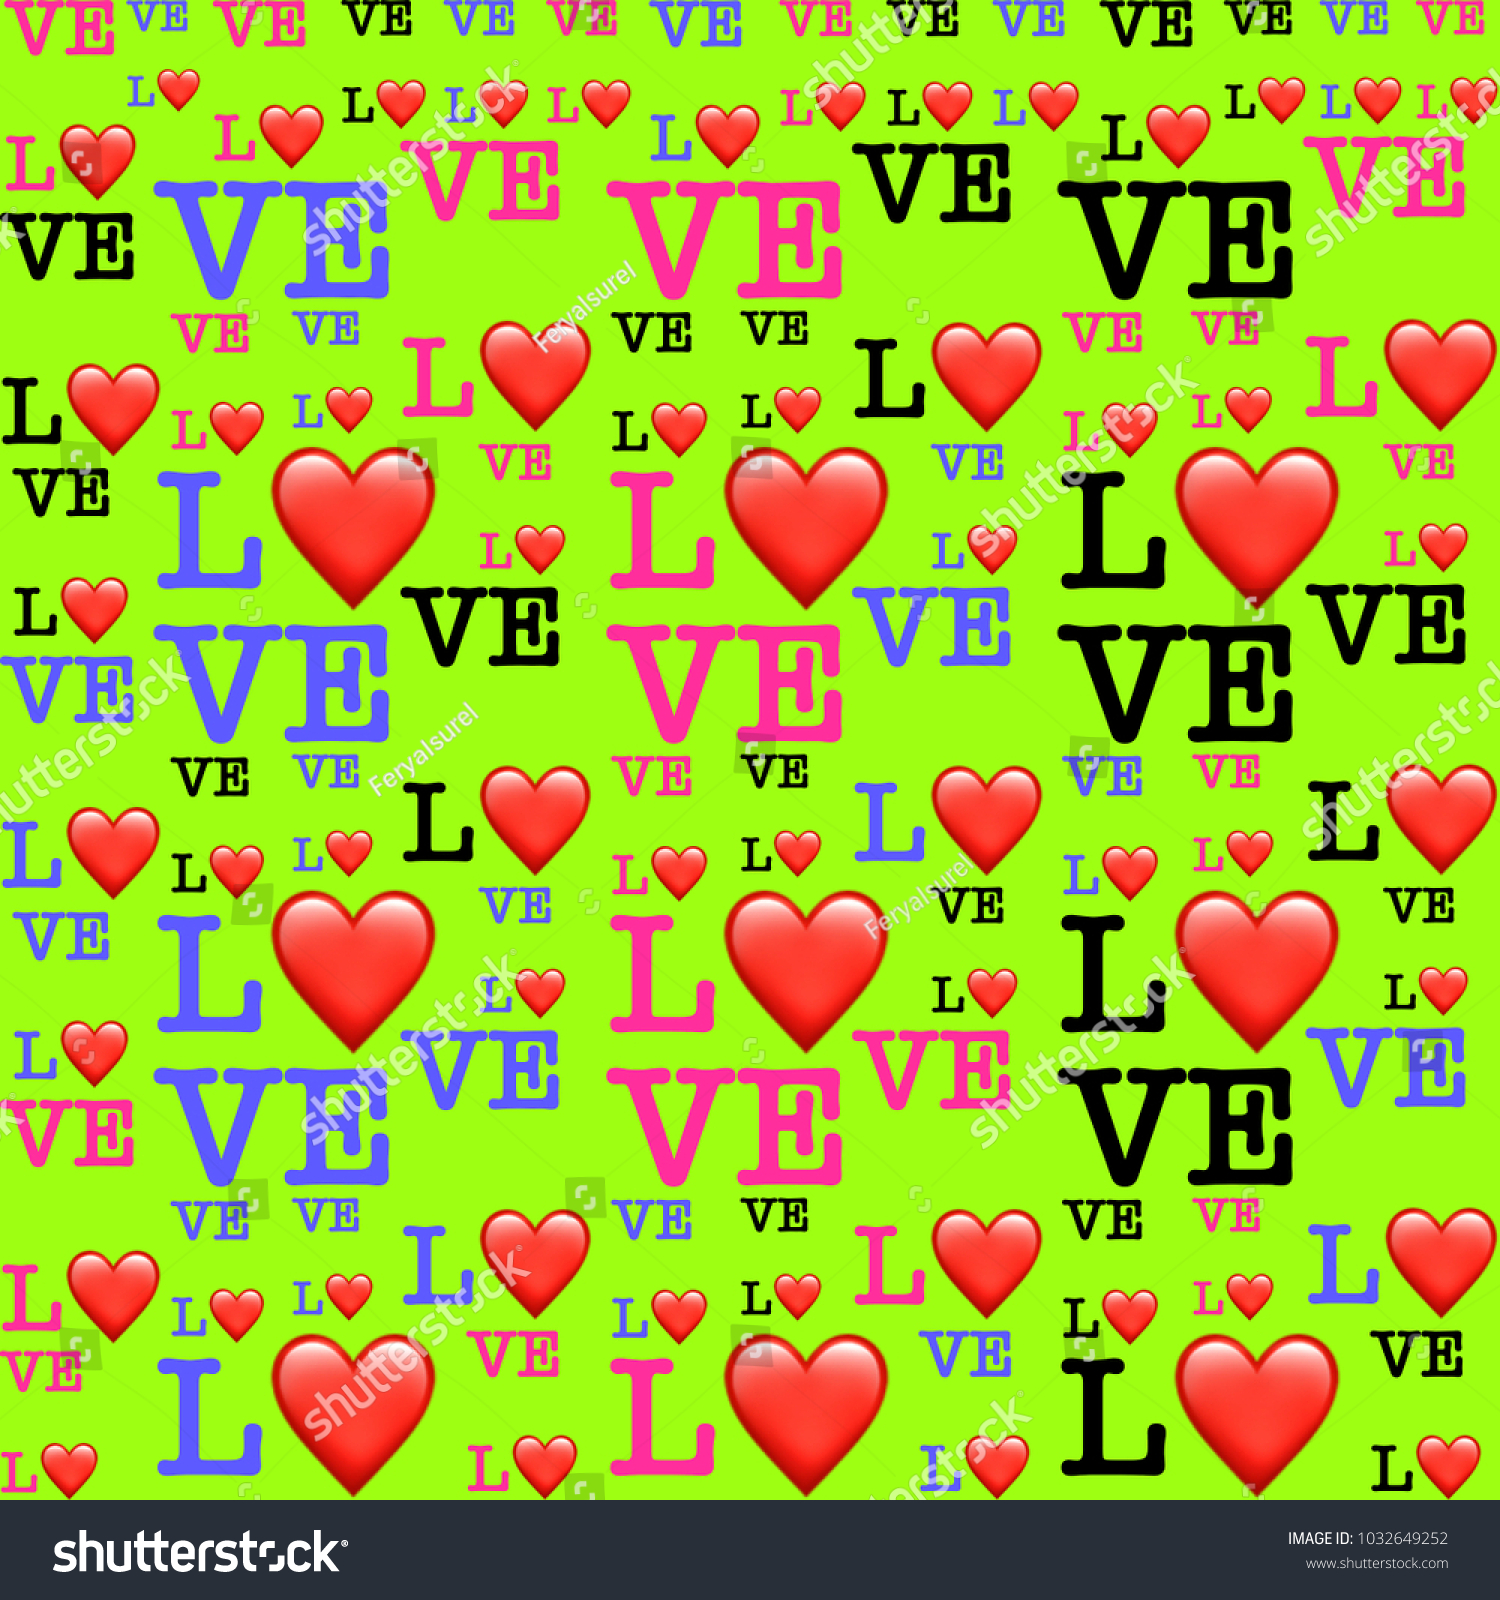 Vibrant colors love symbol hearts on stock illustration 1032649252 vibrant colors love symbol with hearts on yellow background image biocorpaavc Images